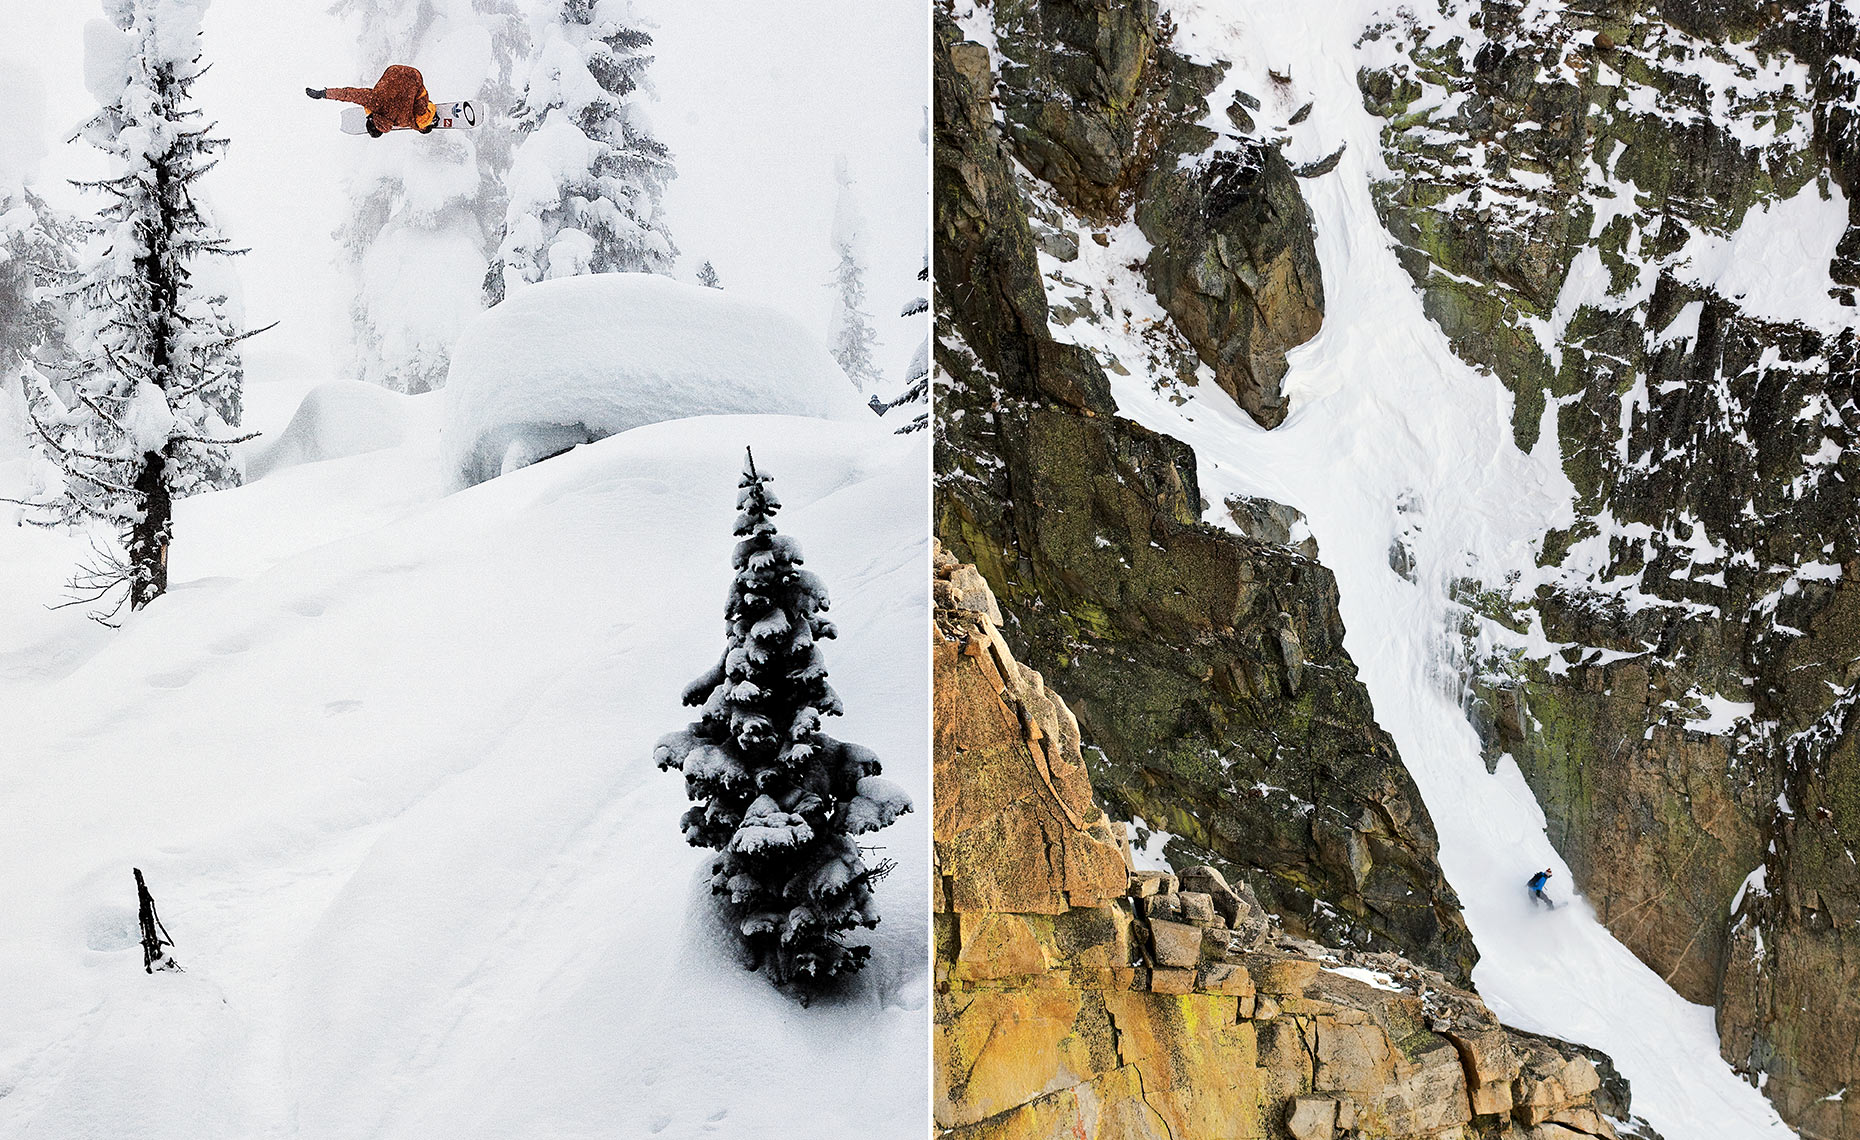 Jake_Blauvelt_Revelstoke_Jeremy_Jones_Tahoe_Chris_Wellhausen